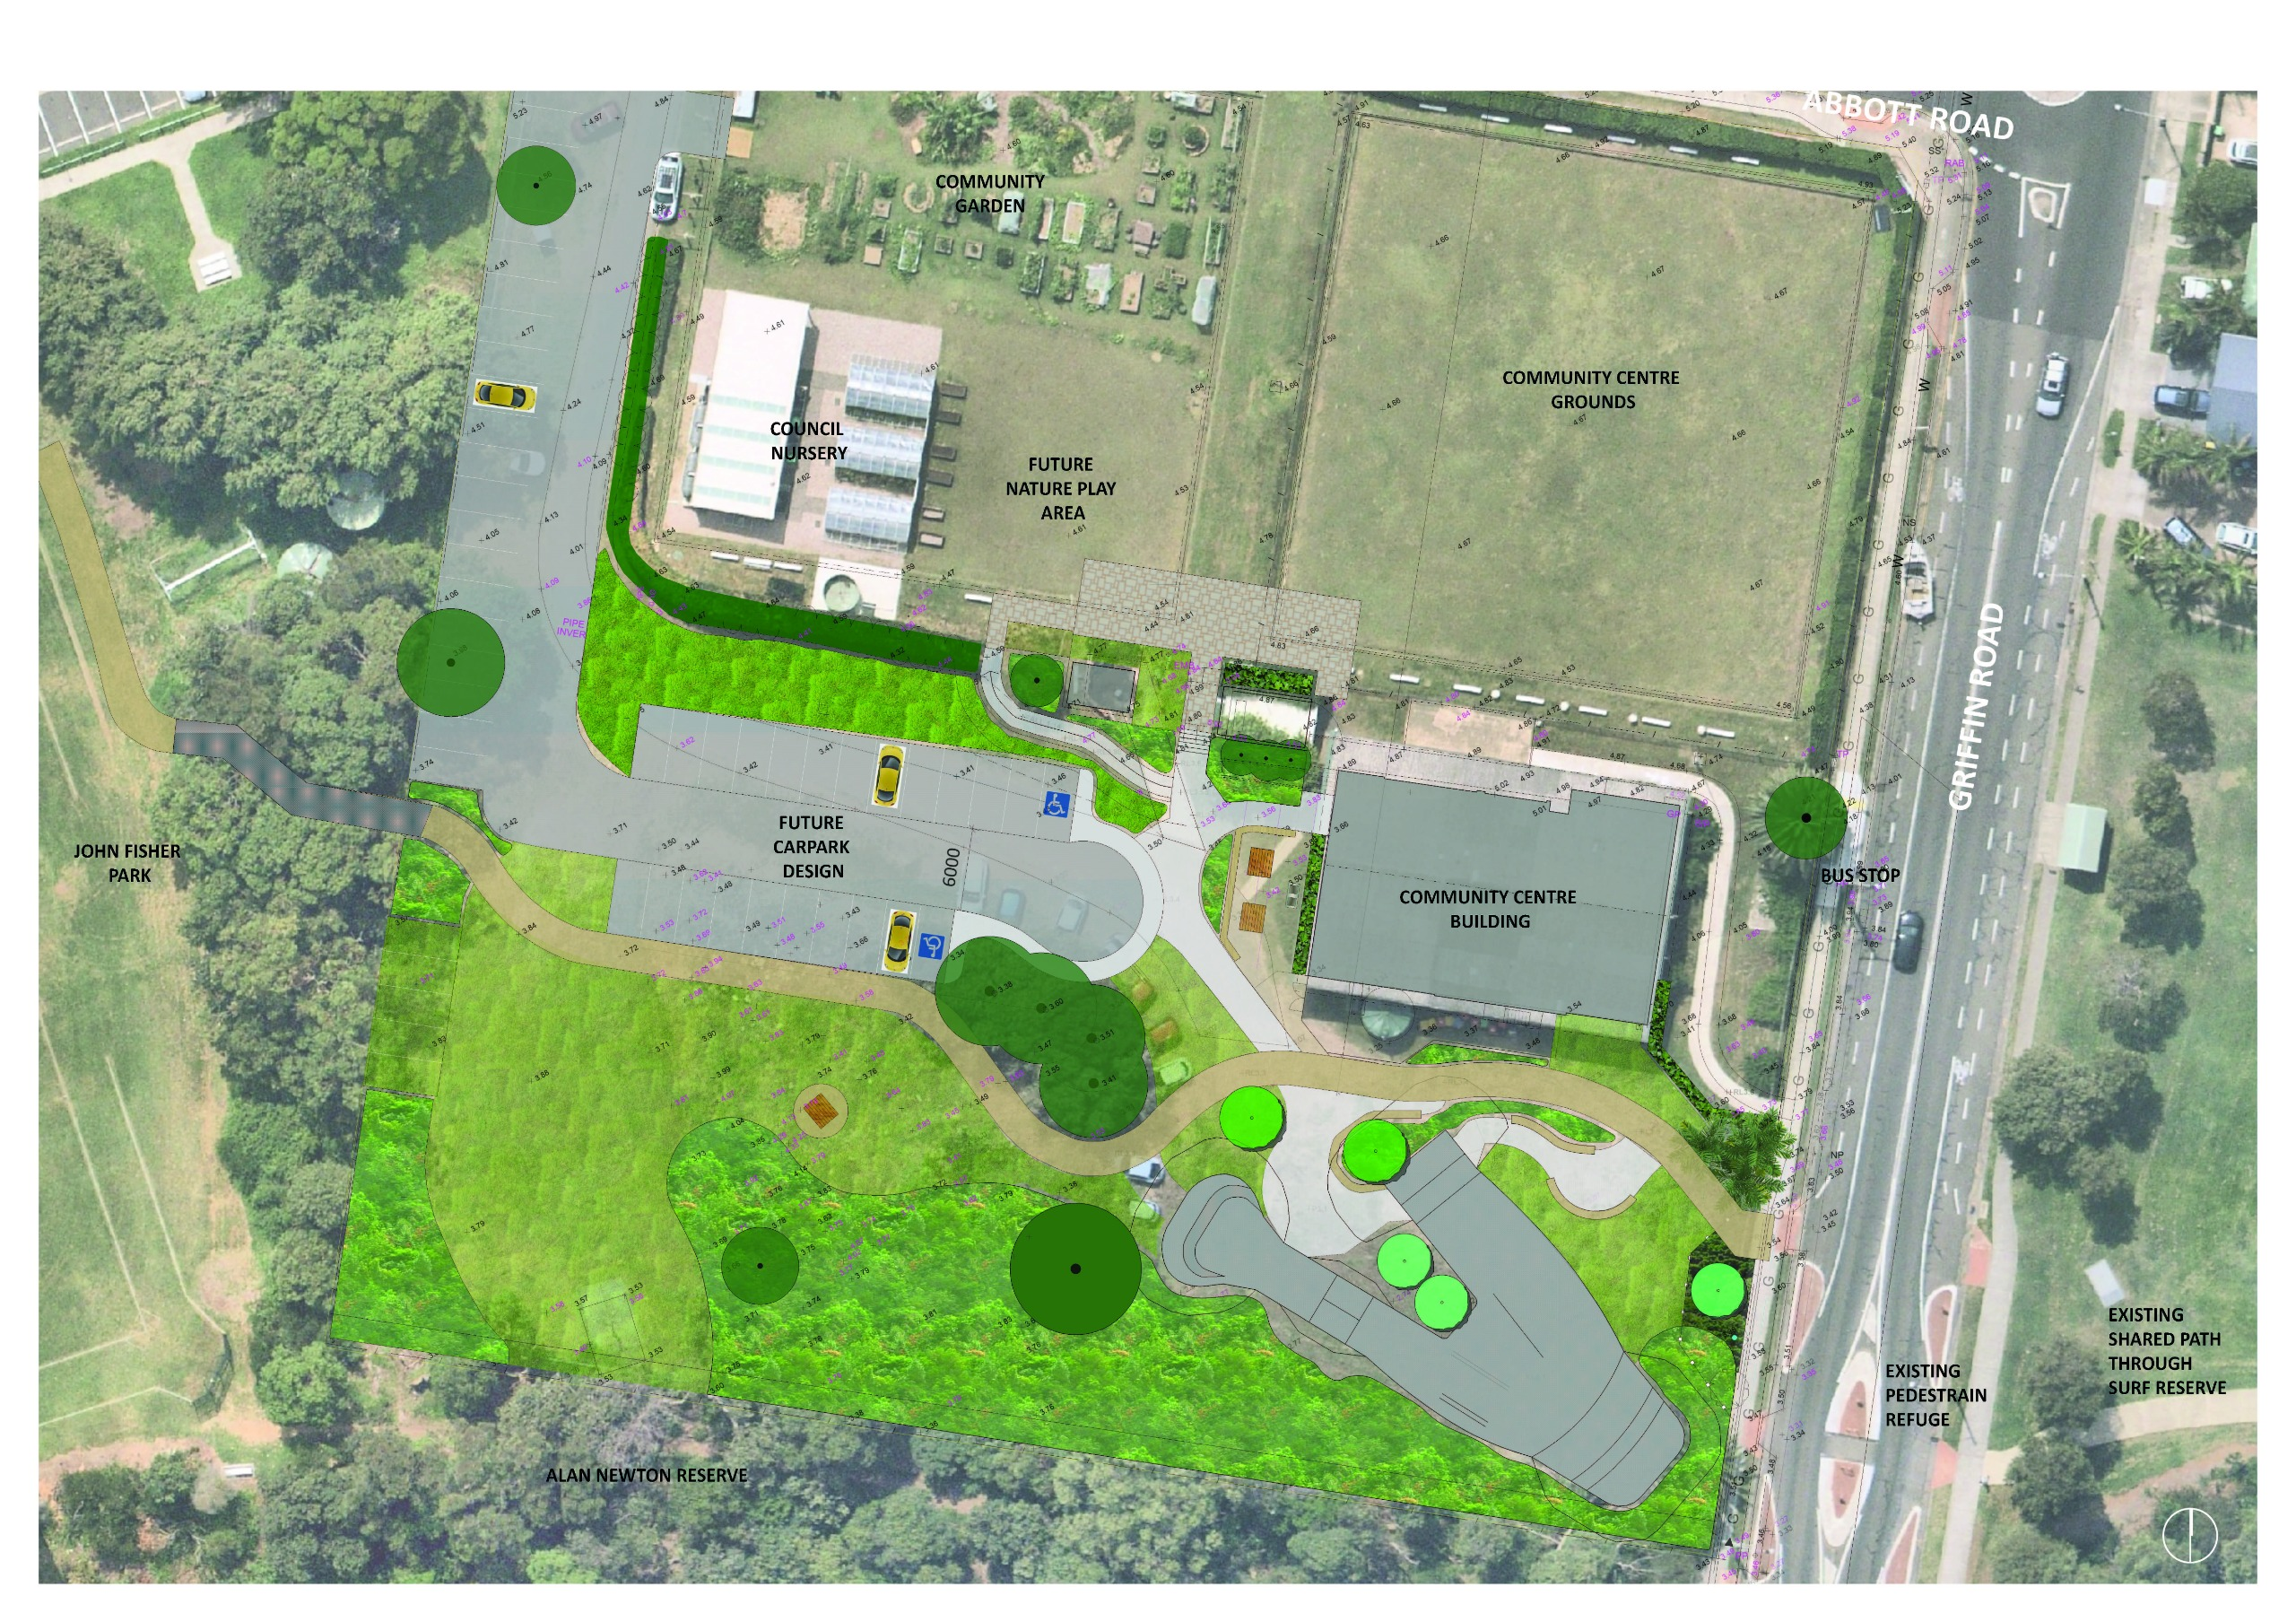 Site map of skate park - North Curl Curl Community Open Space Precinct